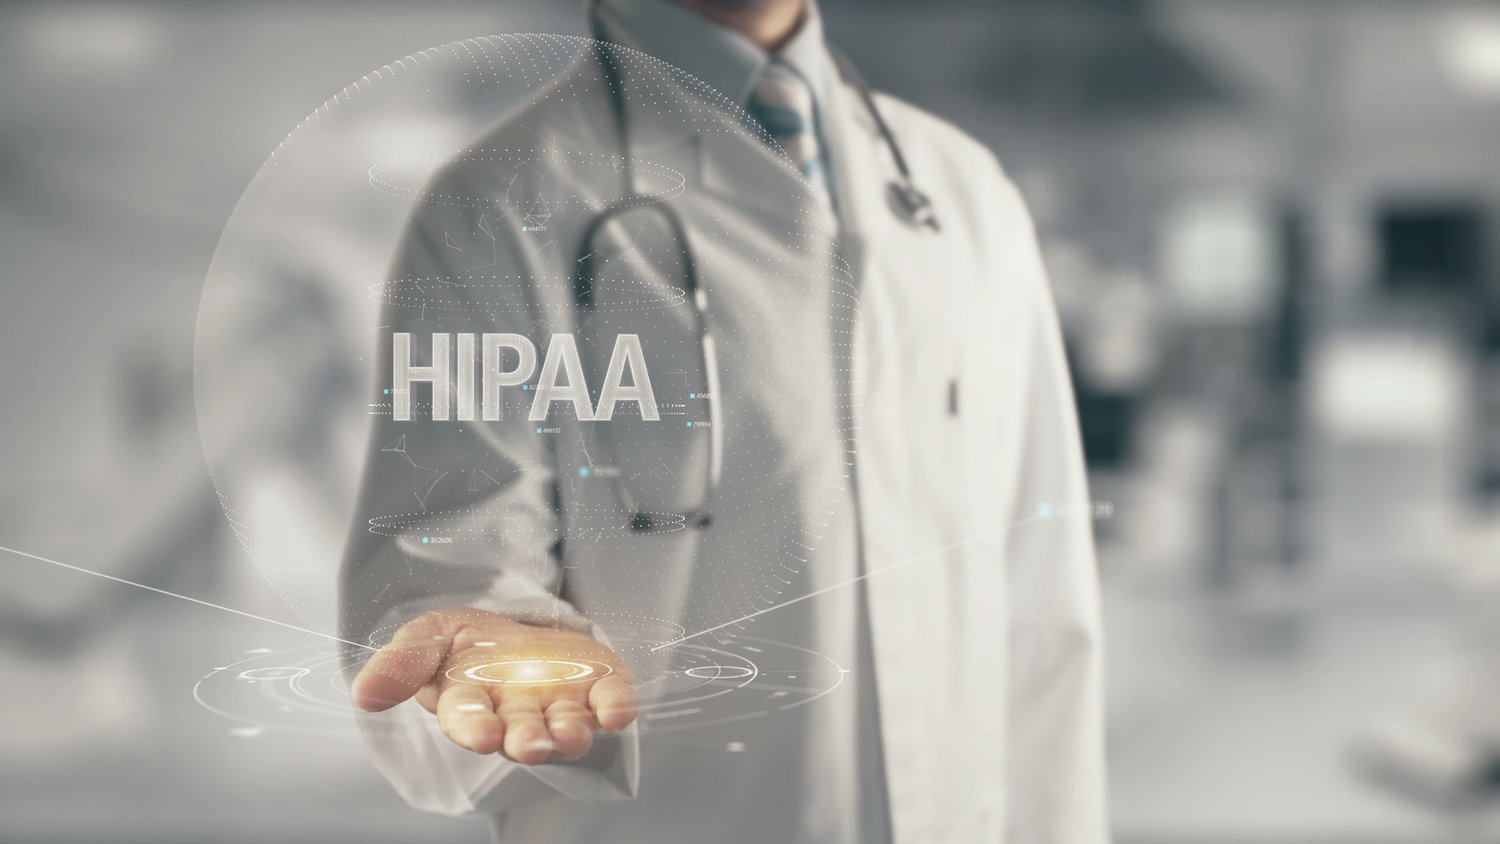 HIPAA Compliance Checklist: Are You Compliant?